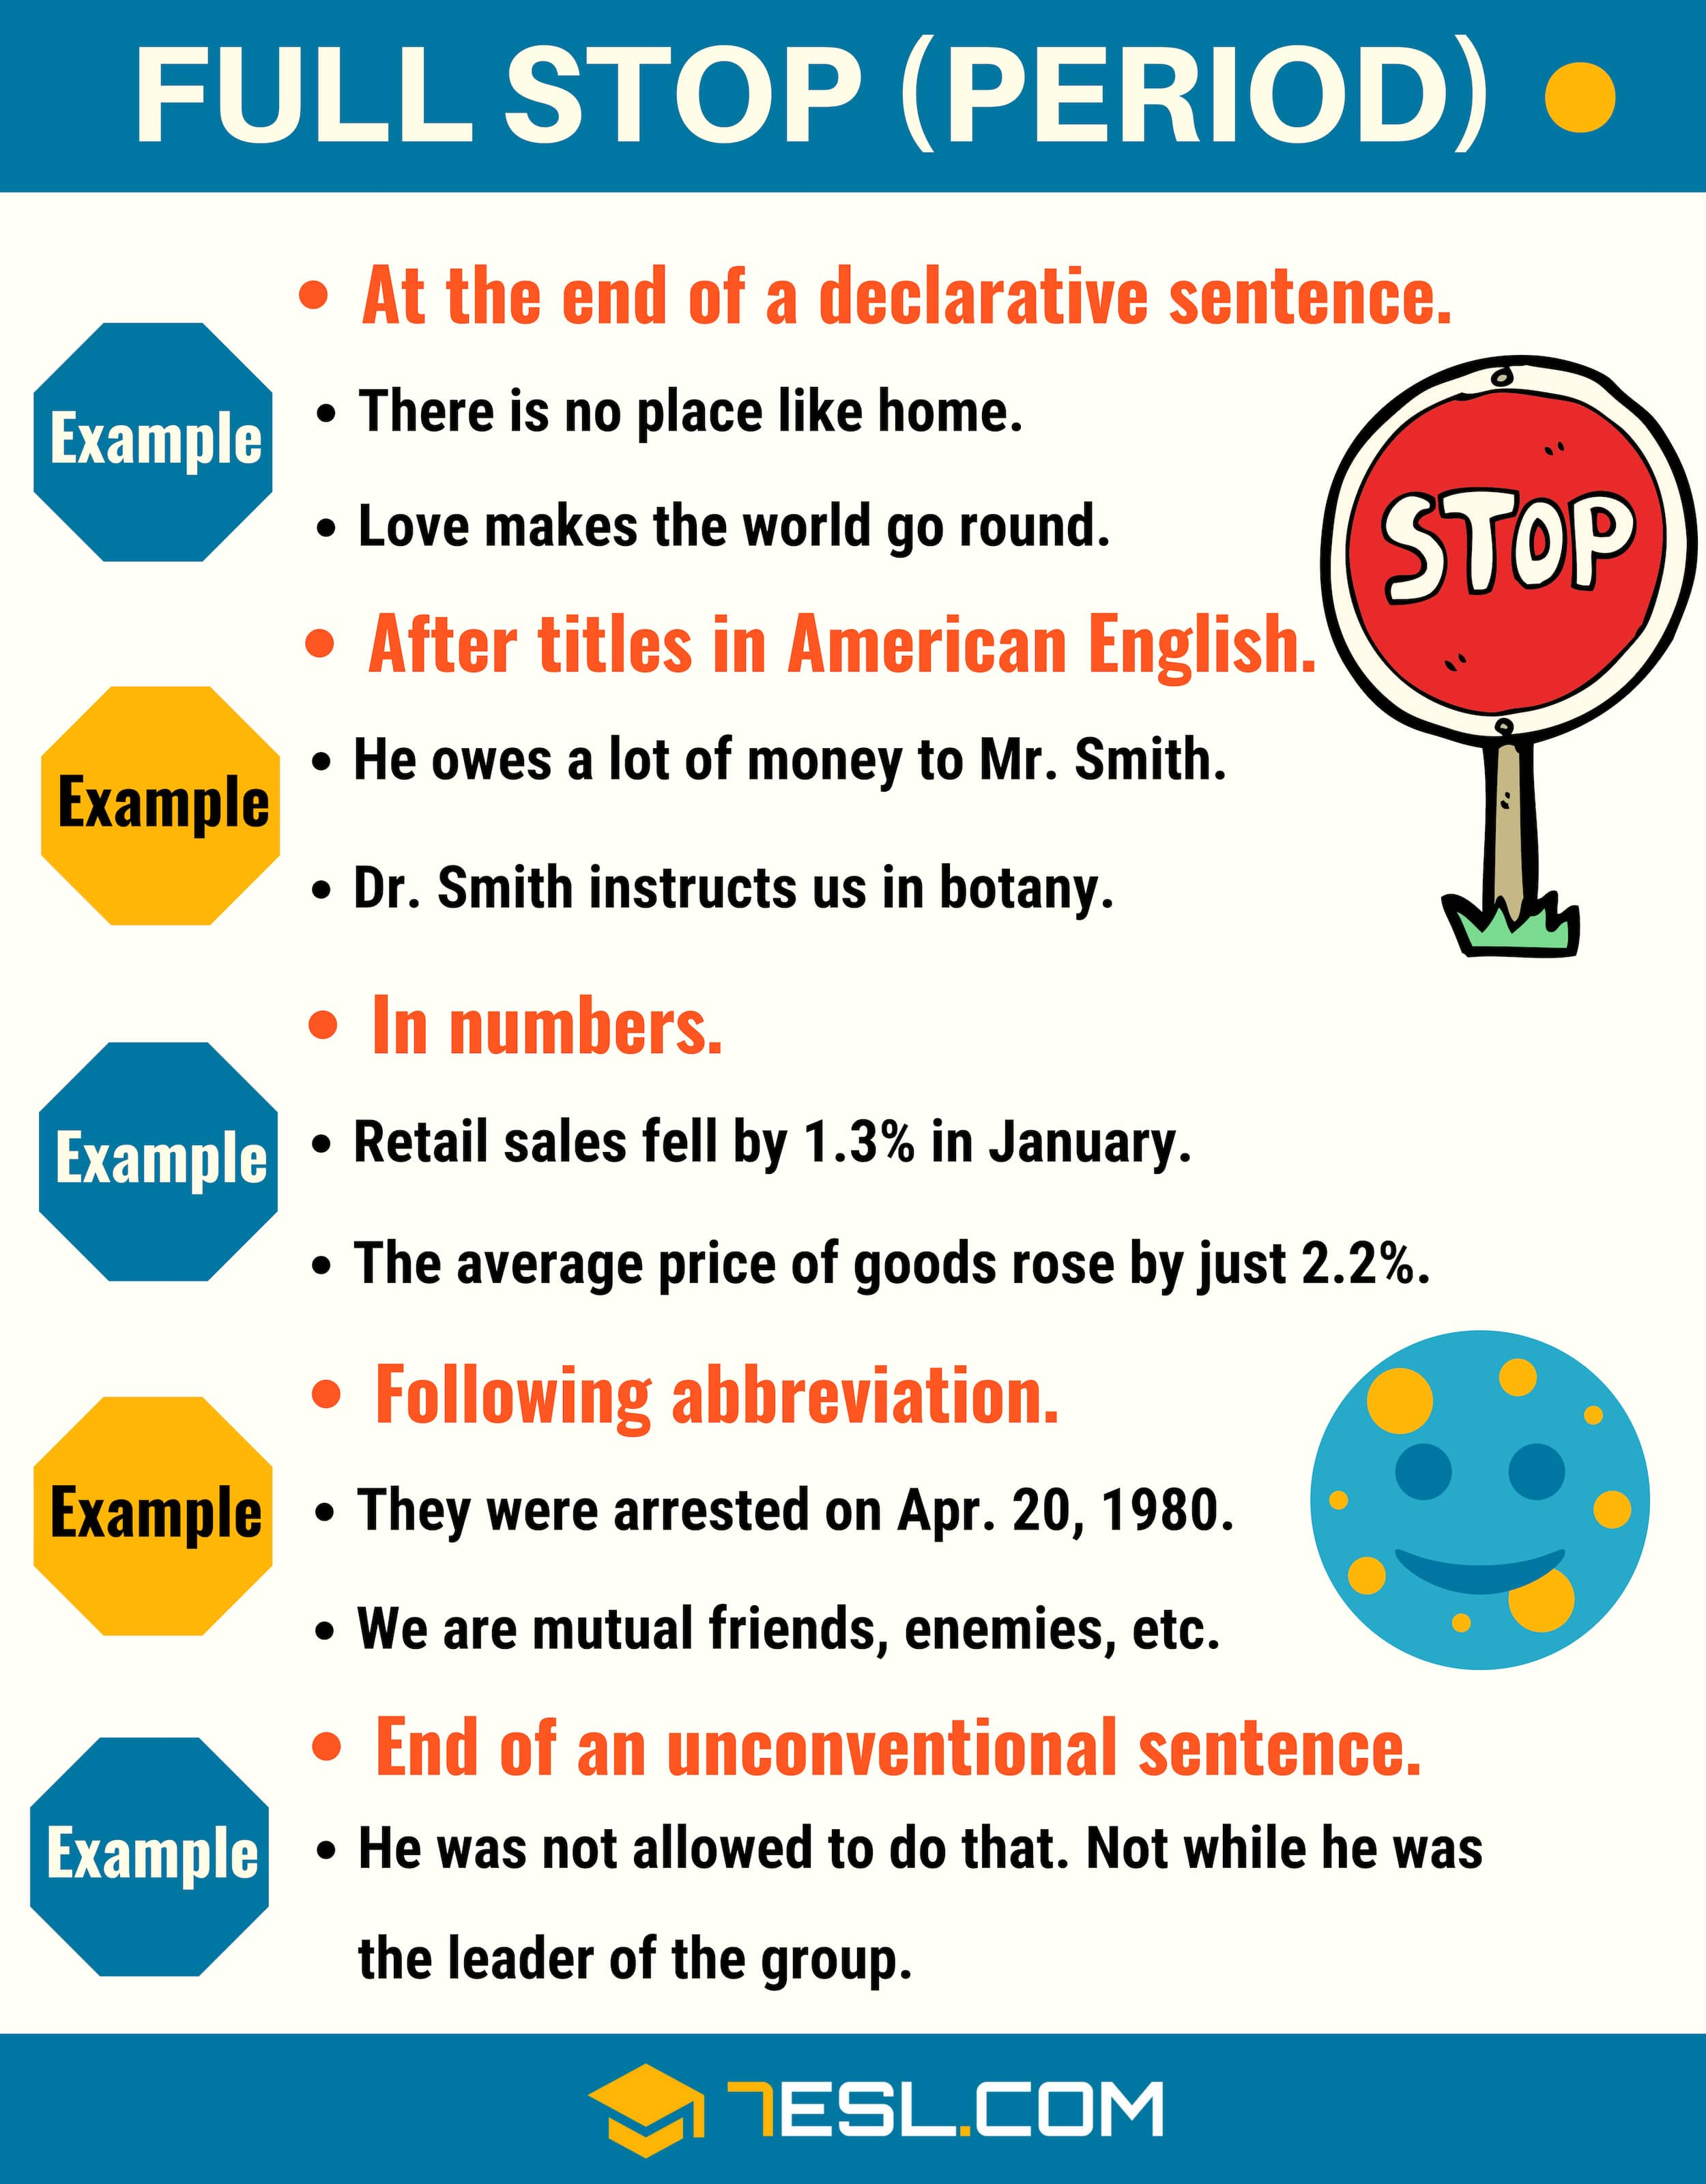 Full Stop (.) When to Use a Full Stop (Period Punctuation)